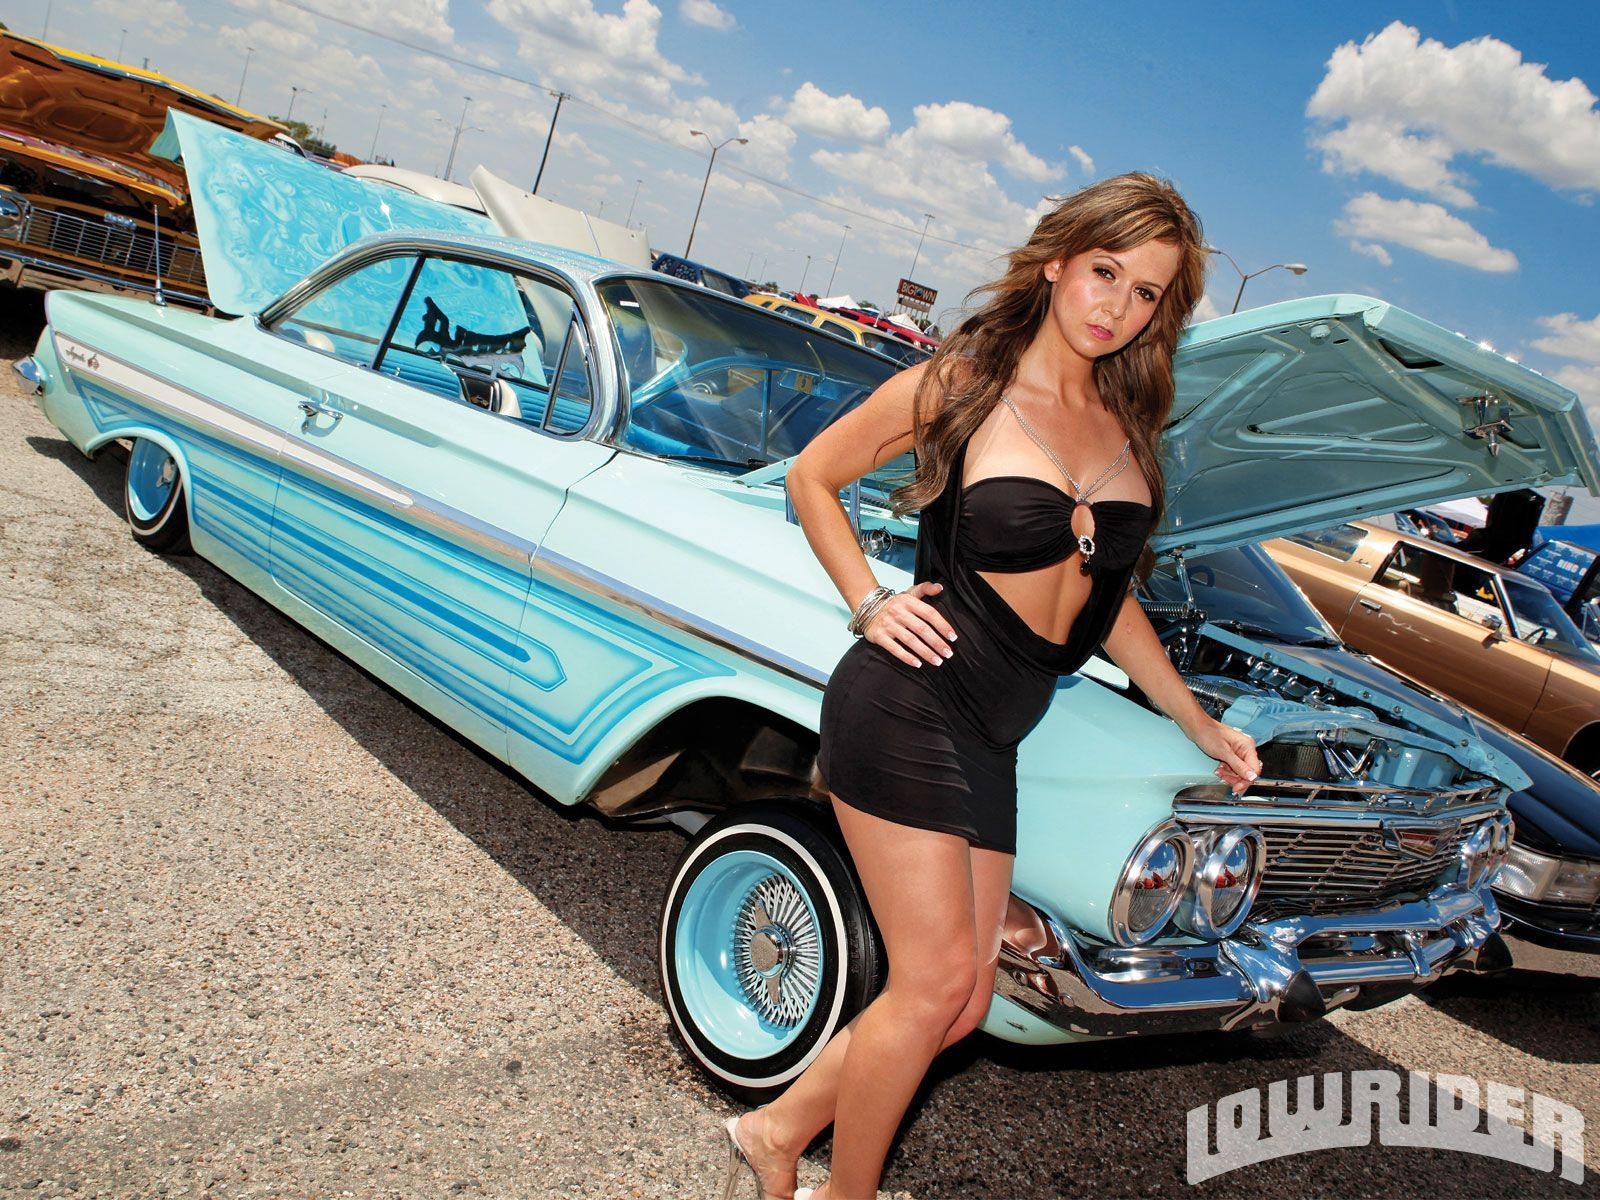 Lowrider Cars Where Do I Buy Hydraulics